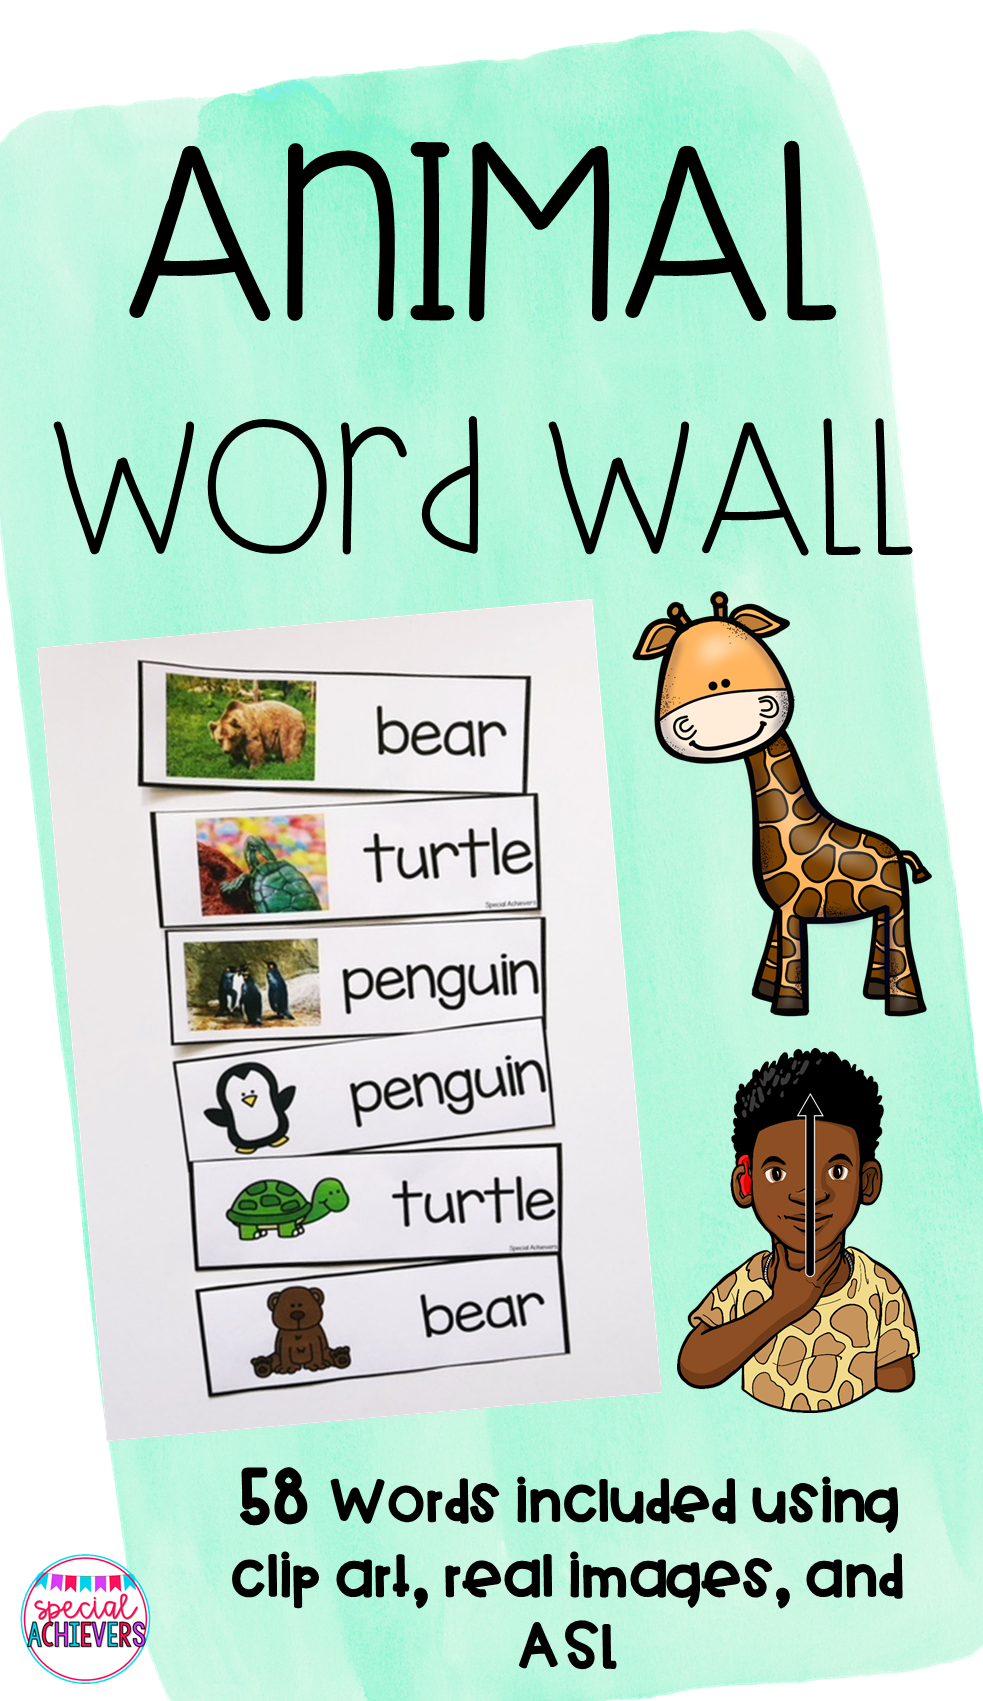 Animal Word Wall | Special Achiever's Teachers Pay Teachers Store